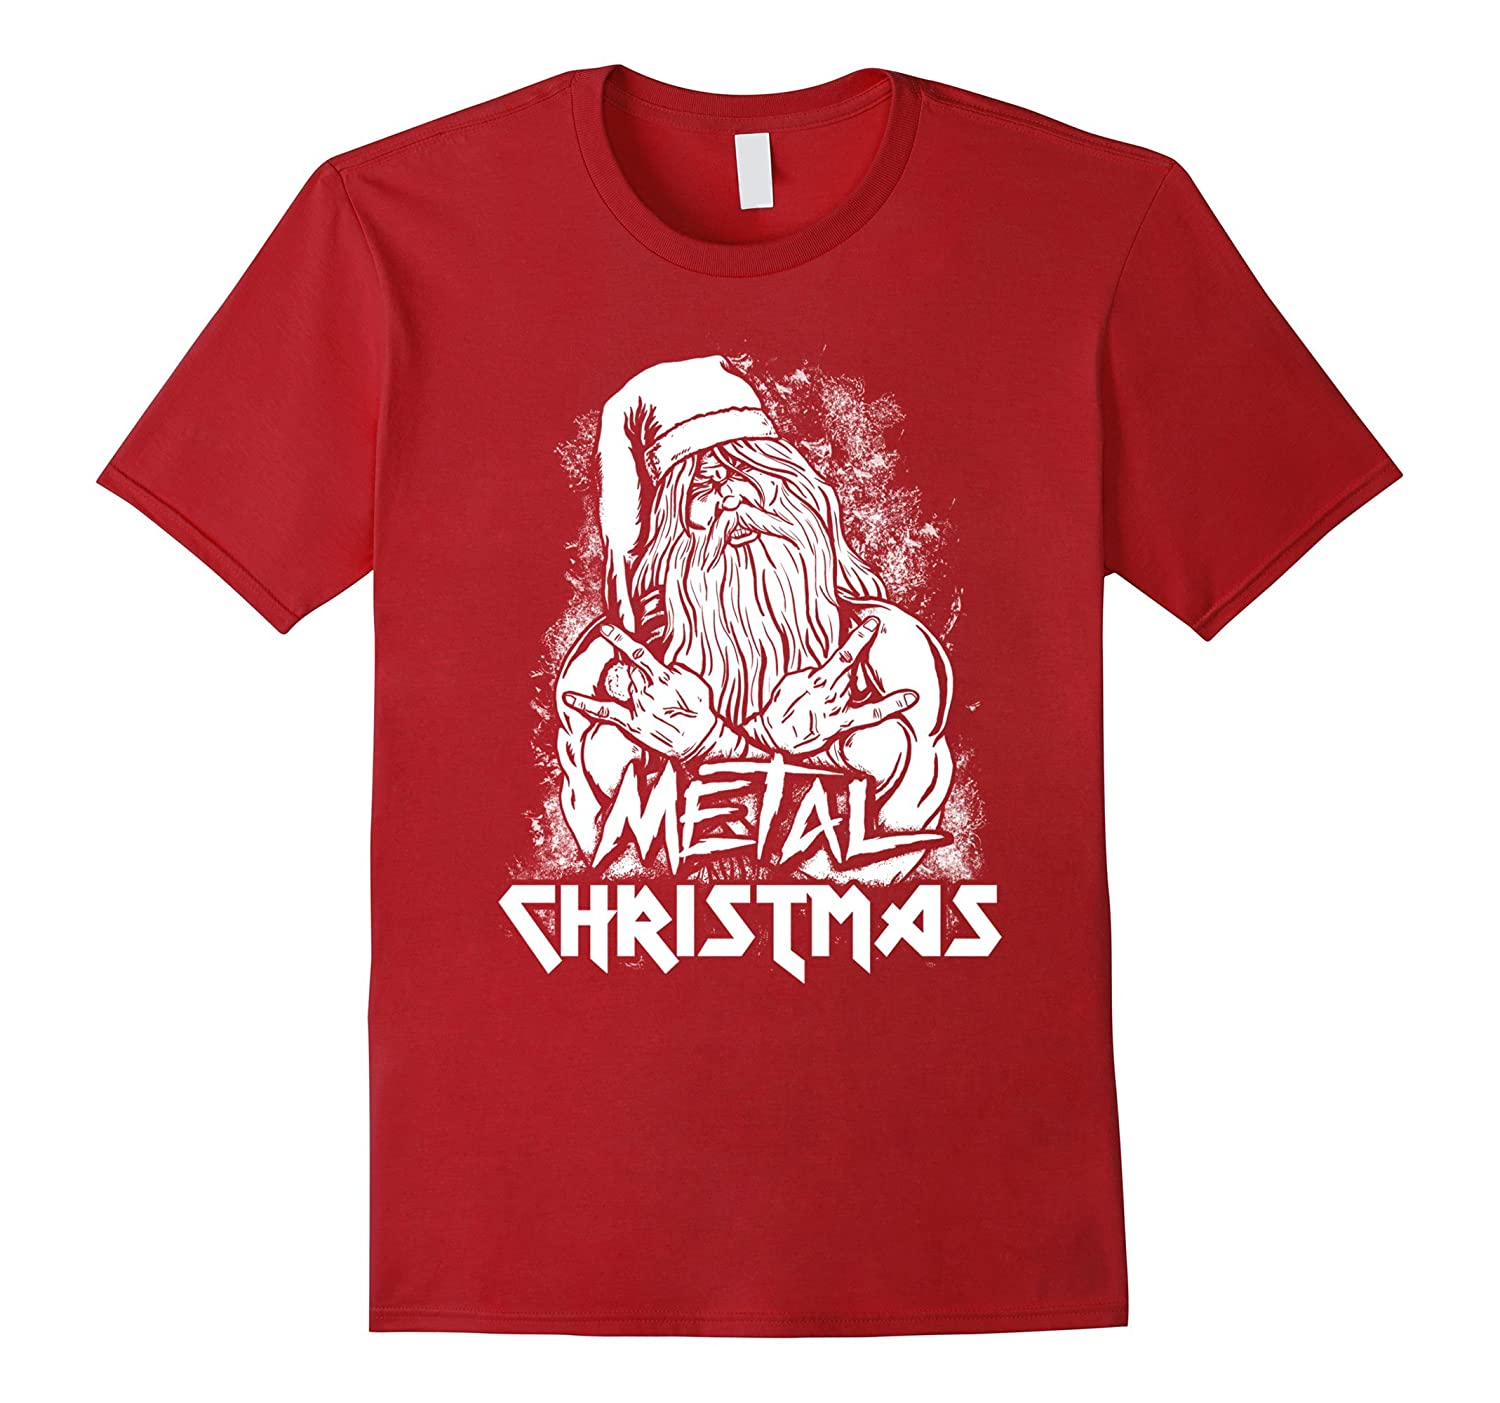 Amazon.com: Metal Christmas Shirt - Cool Christmas Gift Ideas: Clothing